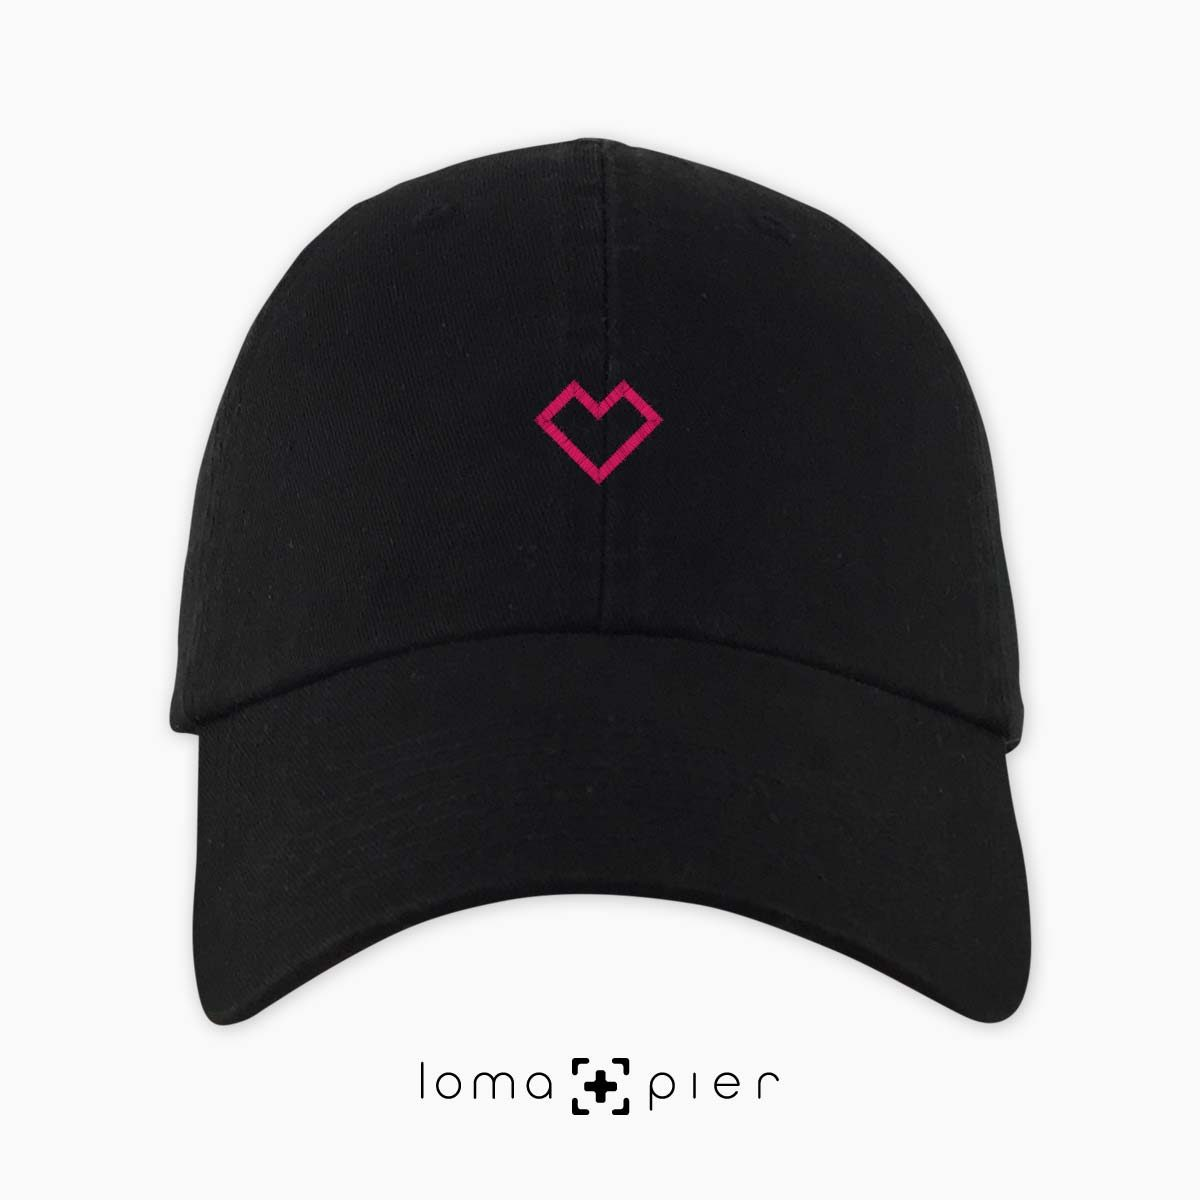 EDGY HEART icon embroidered on a black unstructured dad hat with pink thread by loma+pier hat store made in the USA